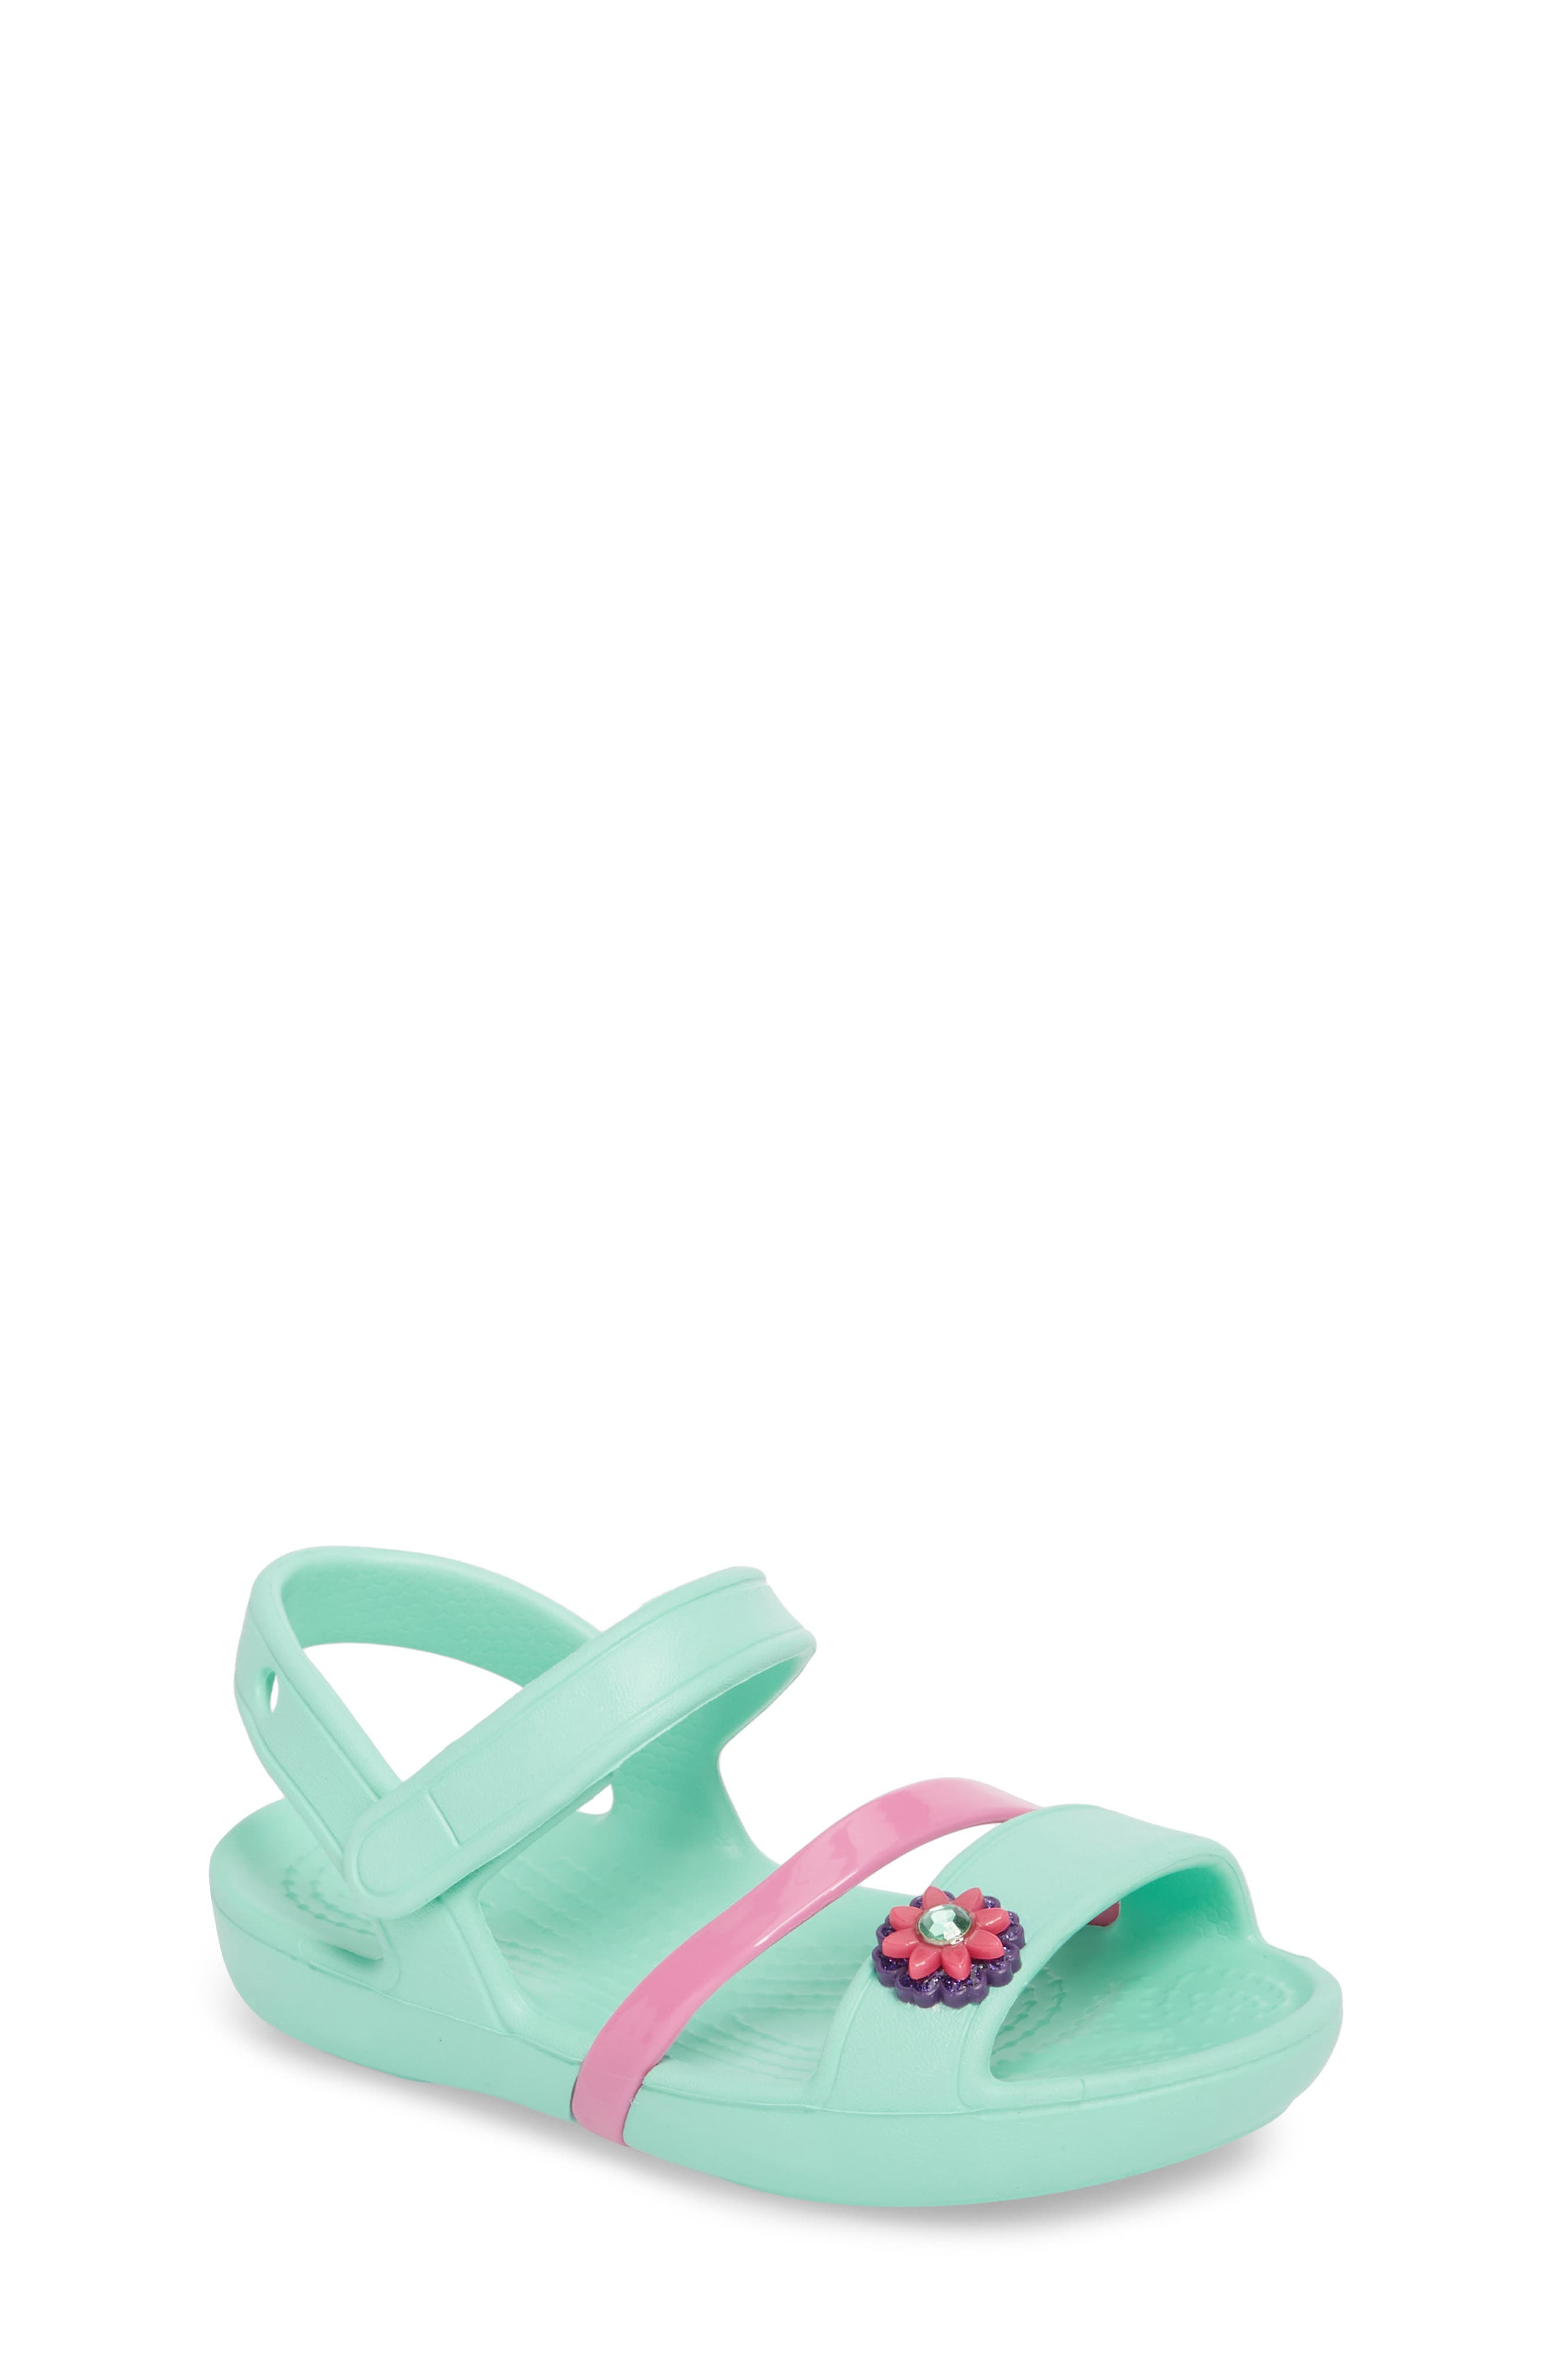 Lina Sandal,                         Main,                         color, 445